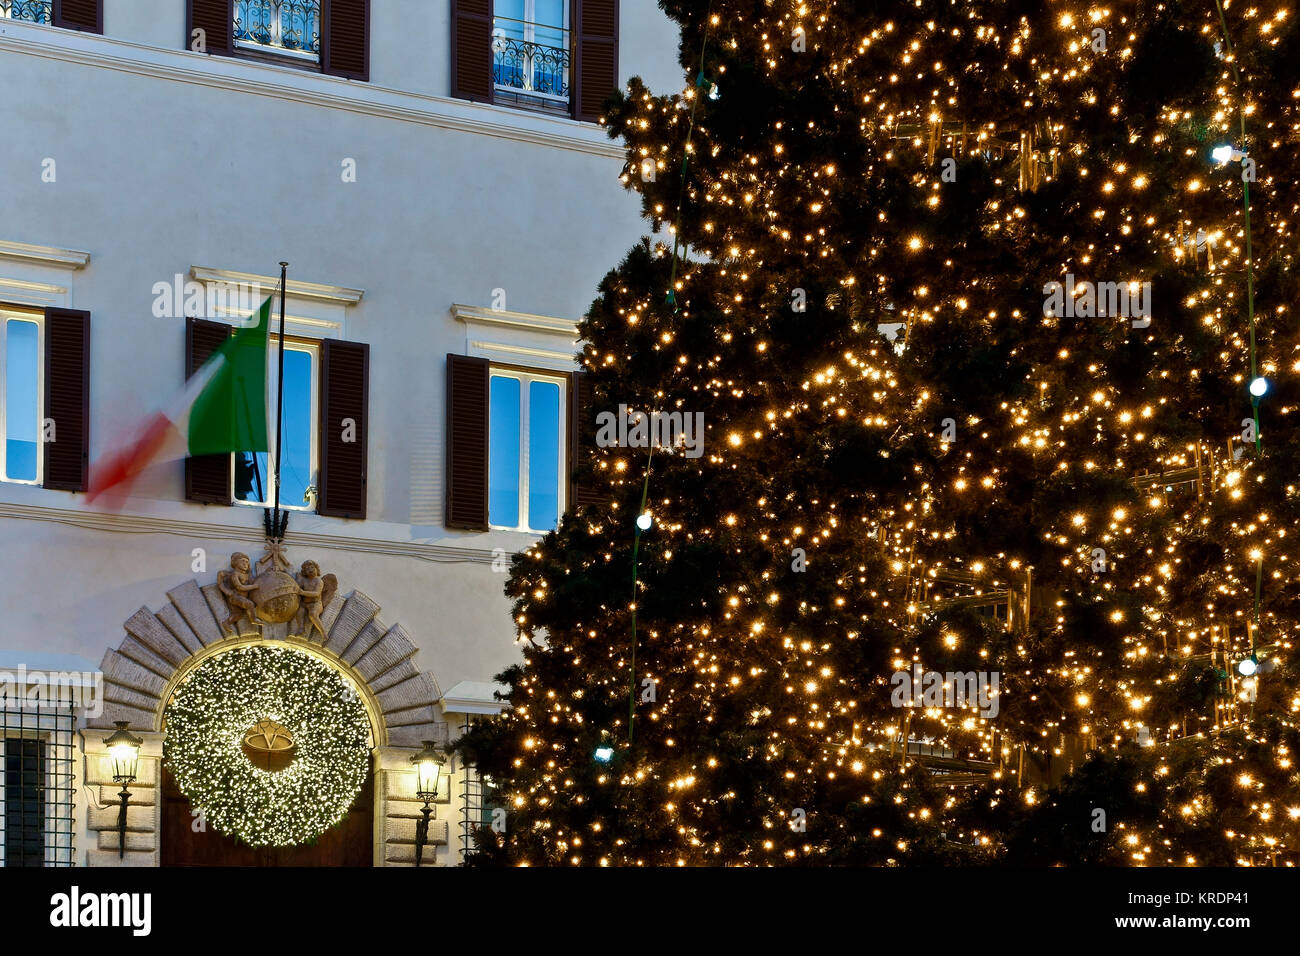 rome christmas led lights tree decorations valentino palace entrance italy europe christmas time low angle view close up luxury shopping